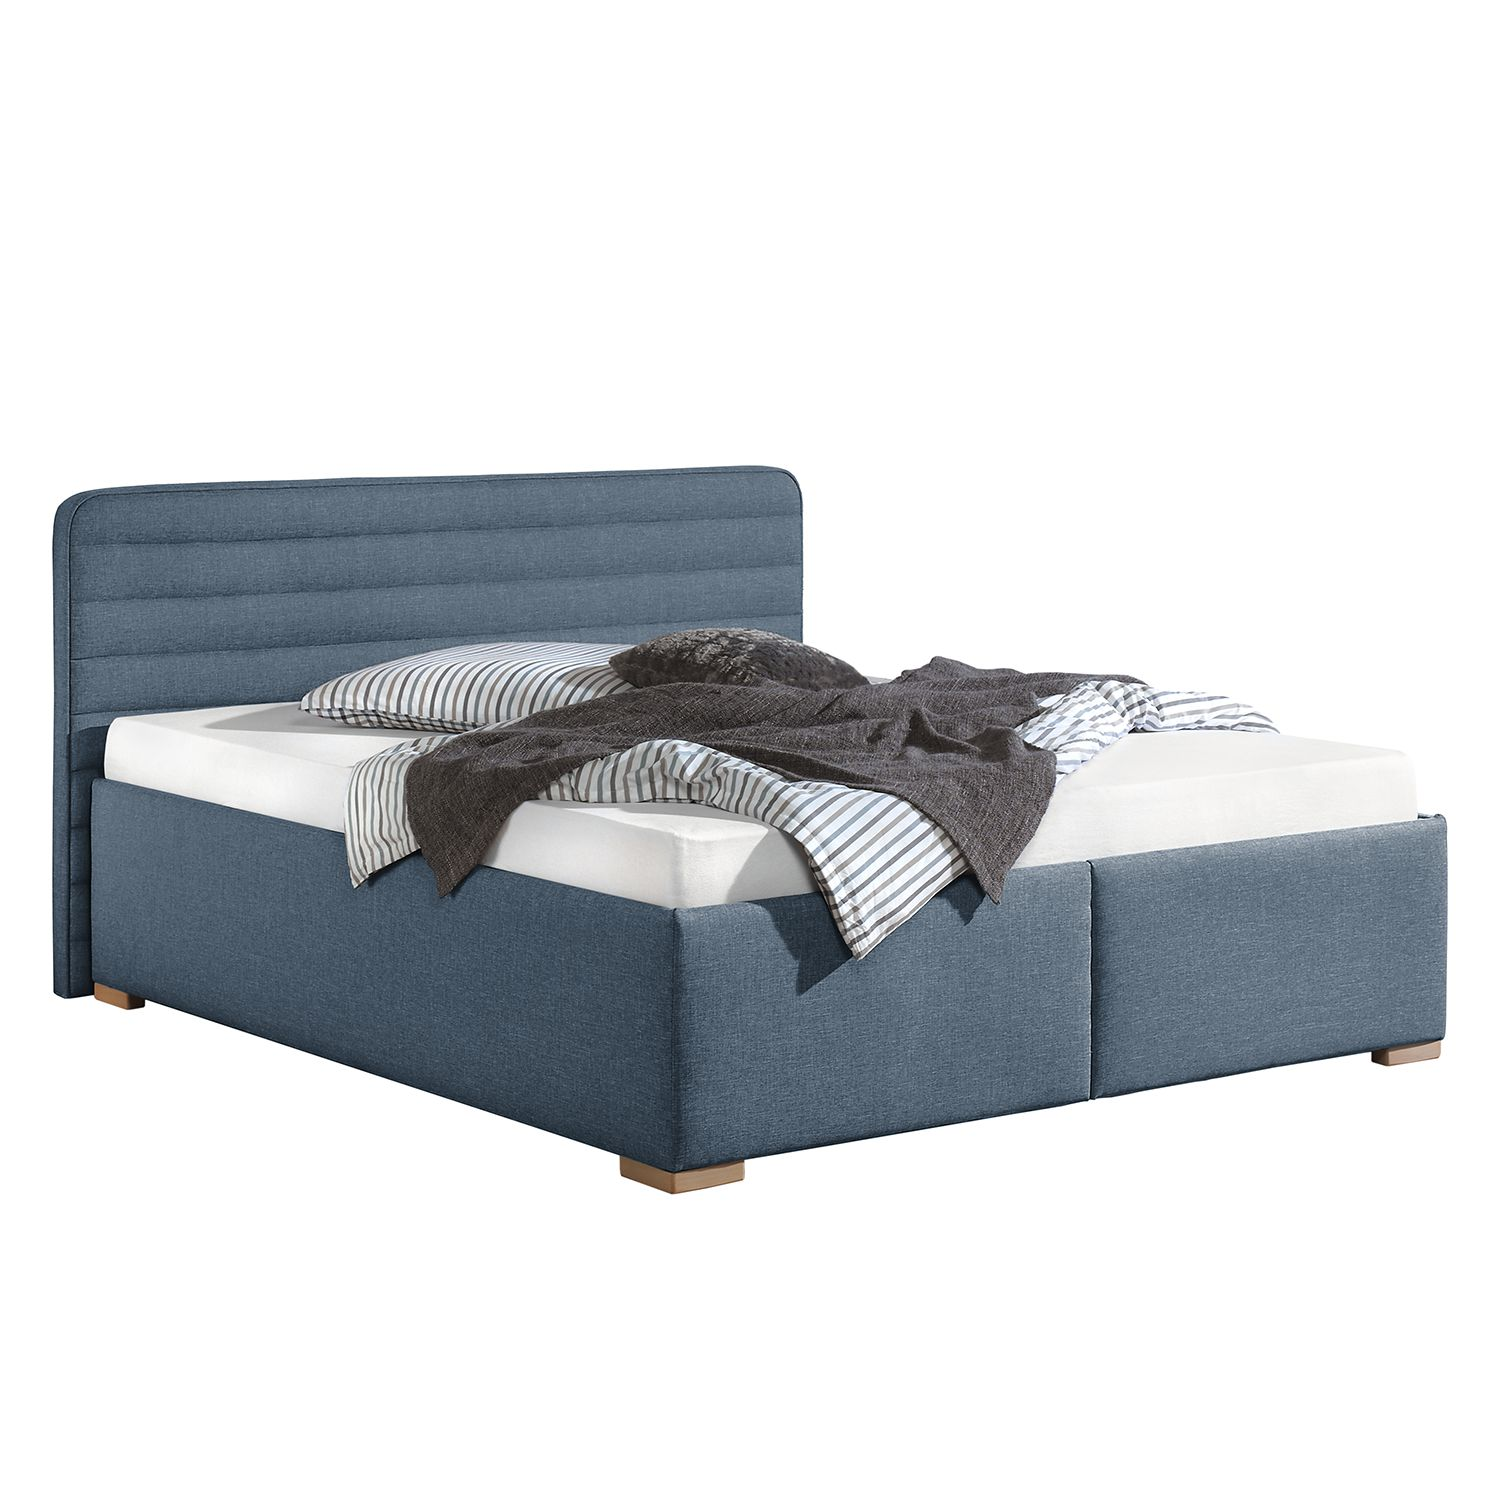 polsterbett vitaby strukturstoff 200 x 200cm bettgestell mit lattenrost jeansblau maison. Black Bedroom Furniture Sets. Home Design Ideas